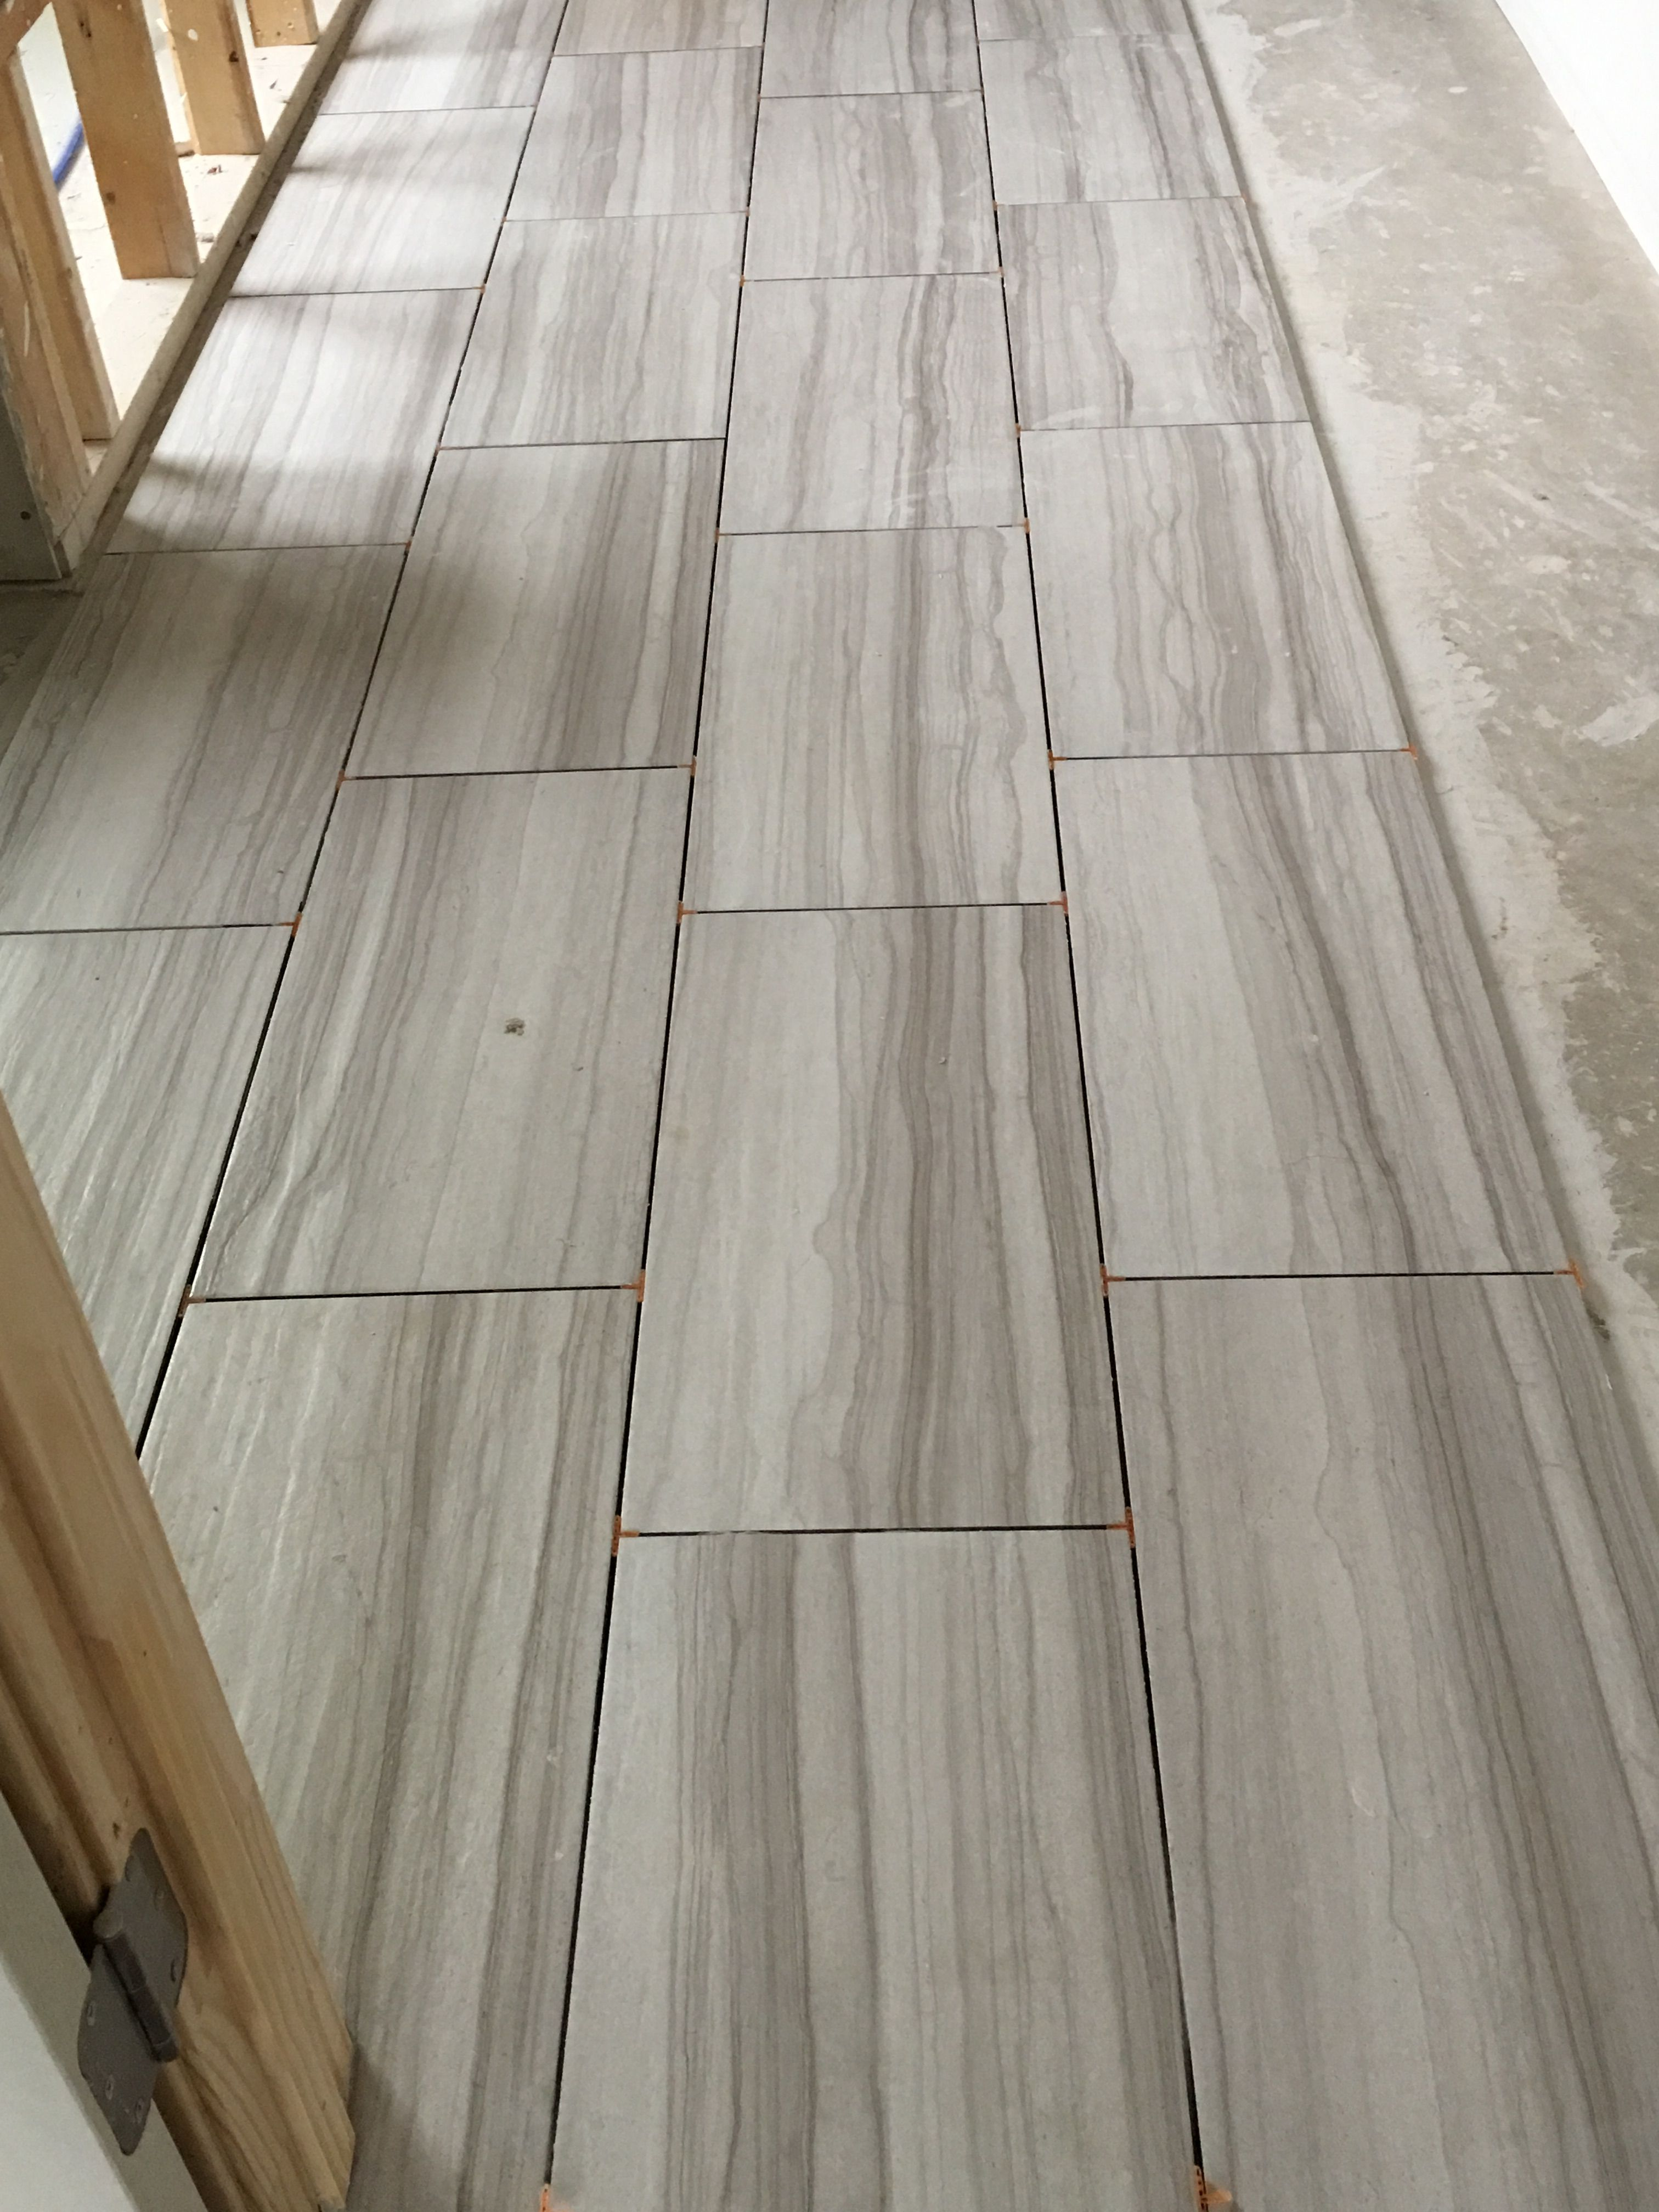 Interceramic Burano Bianca Veletta 12 X 24 W 1 8 Grout Lines Currently Ungrouted But Will Be Texrite Chromaflex Executive House Flooring Grey Wood Flooring